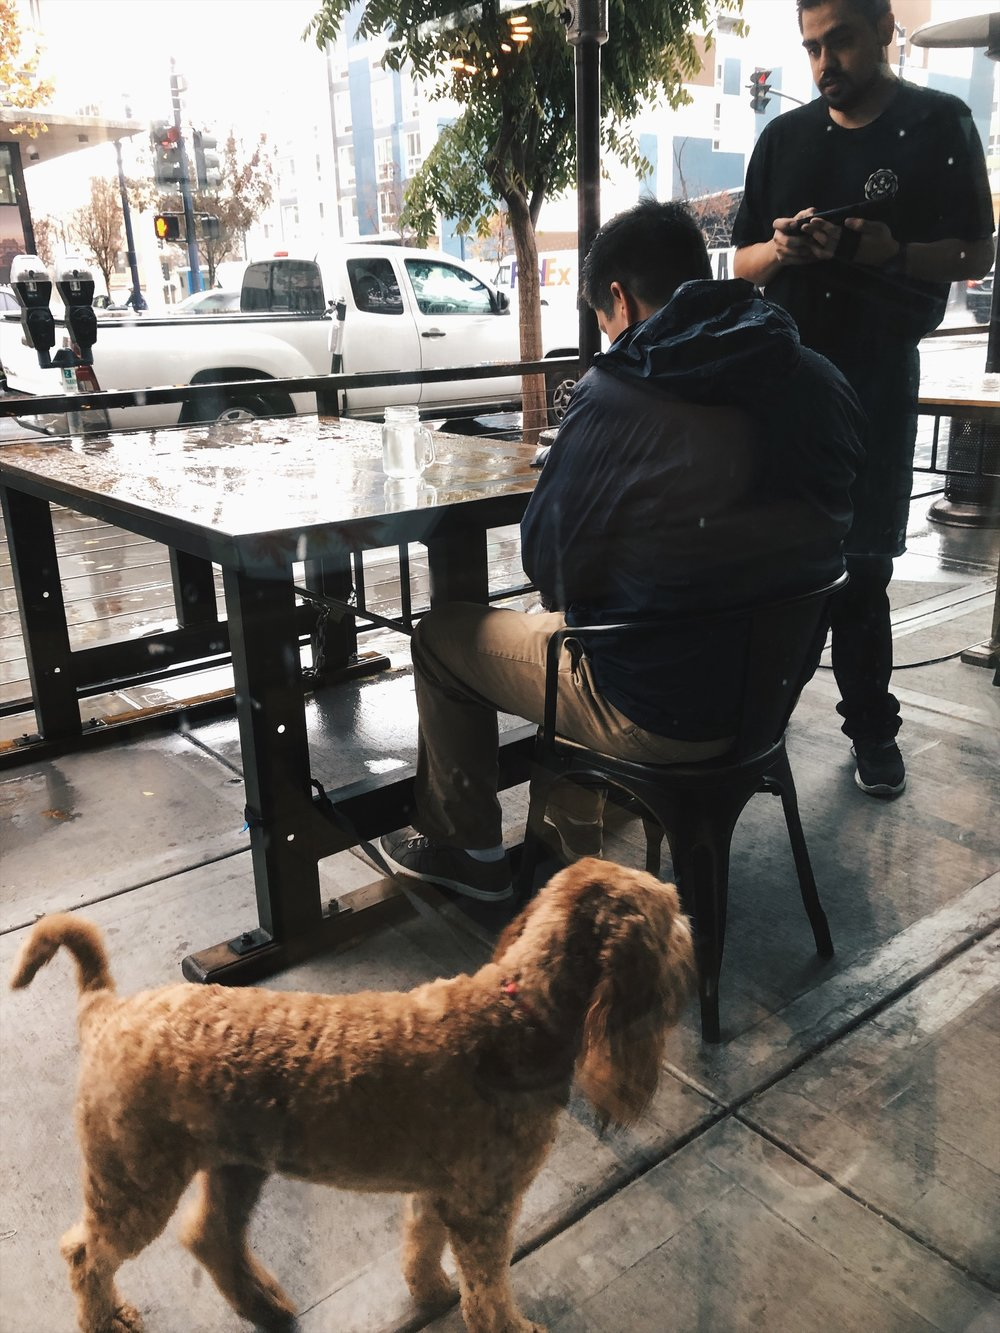 This guy sat outside with his dog, it was cold and rainy.